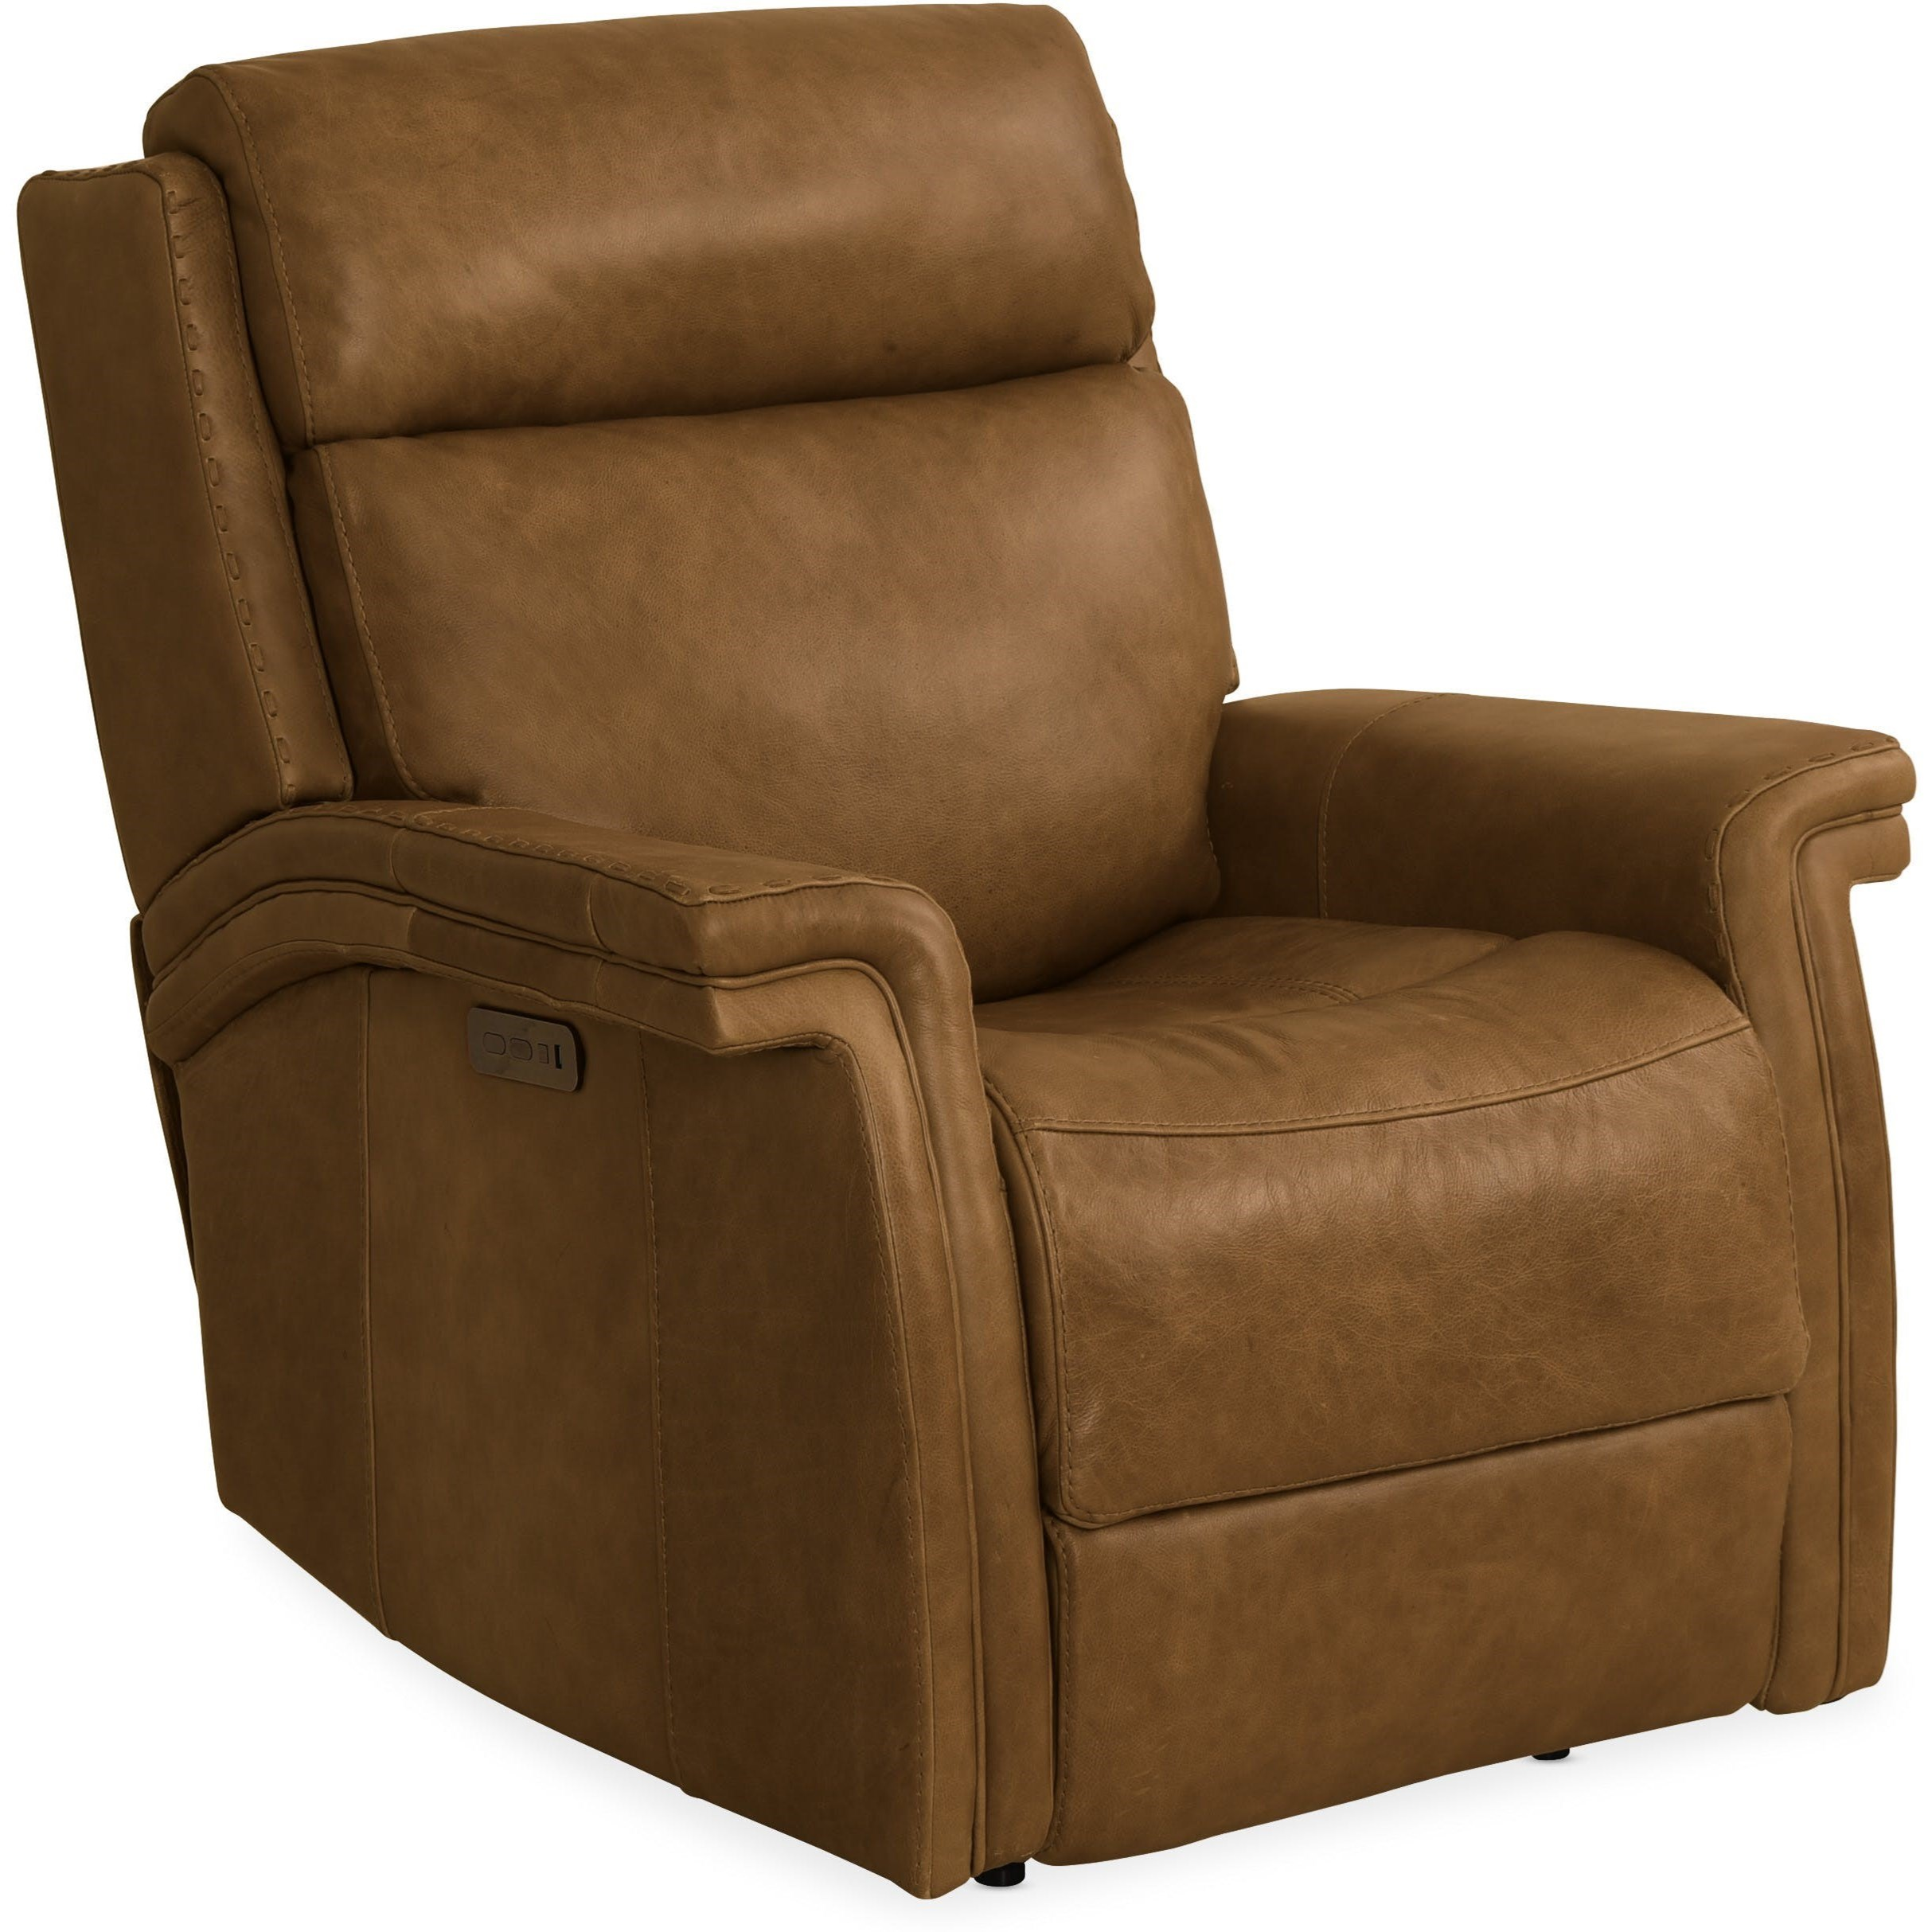 Poise Power Recliner by Hooker Furniture at Baer's Furniture